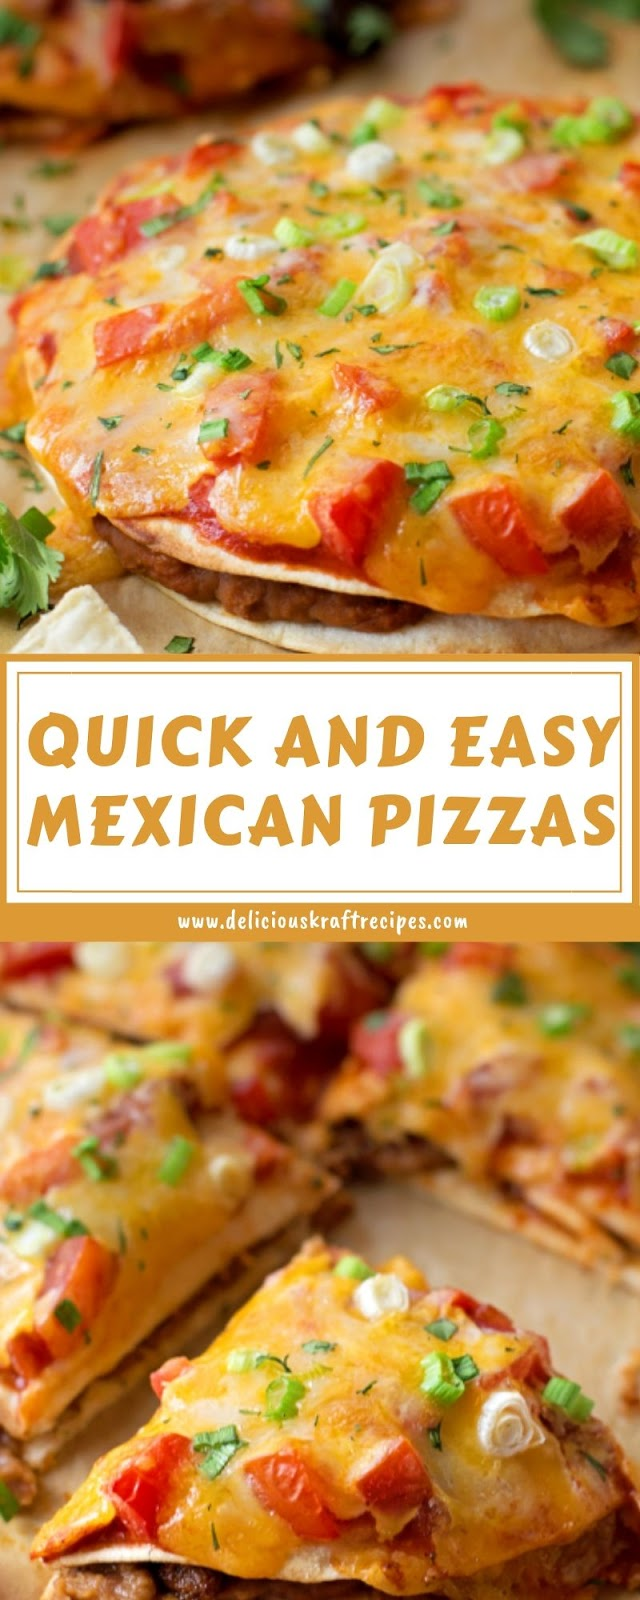 QUICK AND EASY MEXICAN PIZZAS